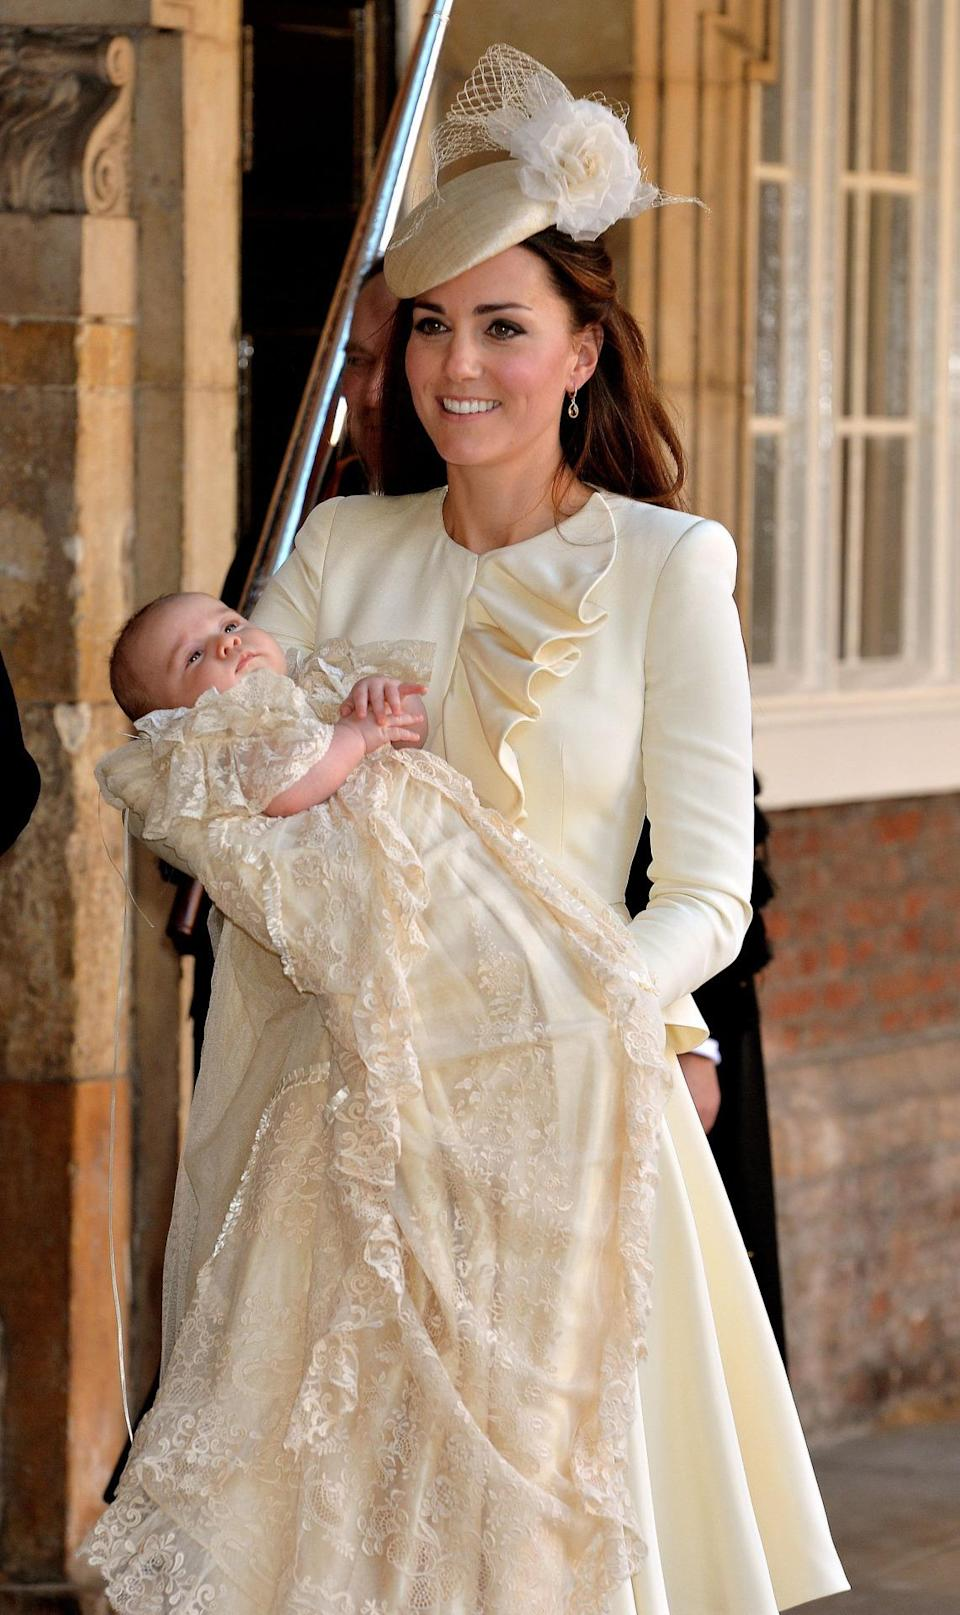 <p>The Duchess donned a lemon yellow Alexander McQueen look complete with a matching Jane Taylor hat for Prince George's christening.</p><p><i>[Photo: PA]</i></p>